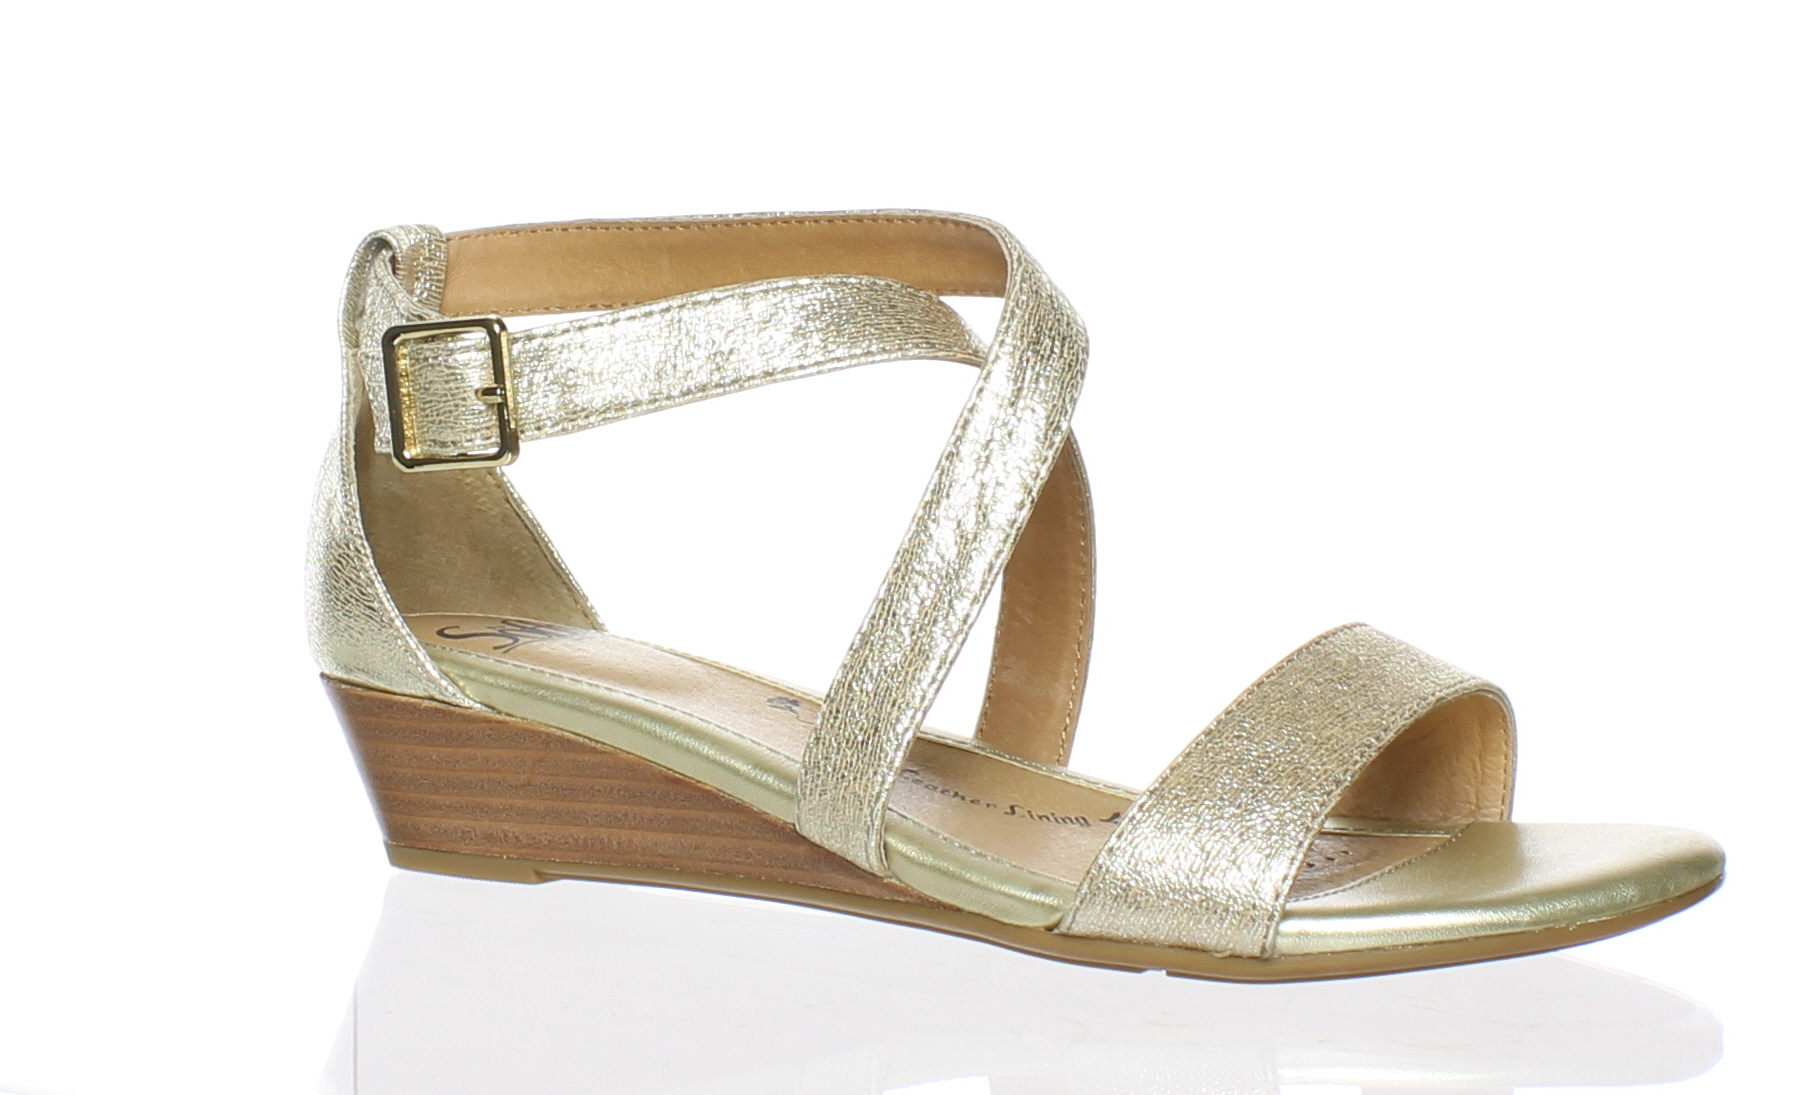 eb8411c86f Sofft WOMENS Innis Gold Ankle Strap Heels Size 7.5 (C,D,W) (172341)